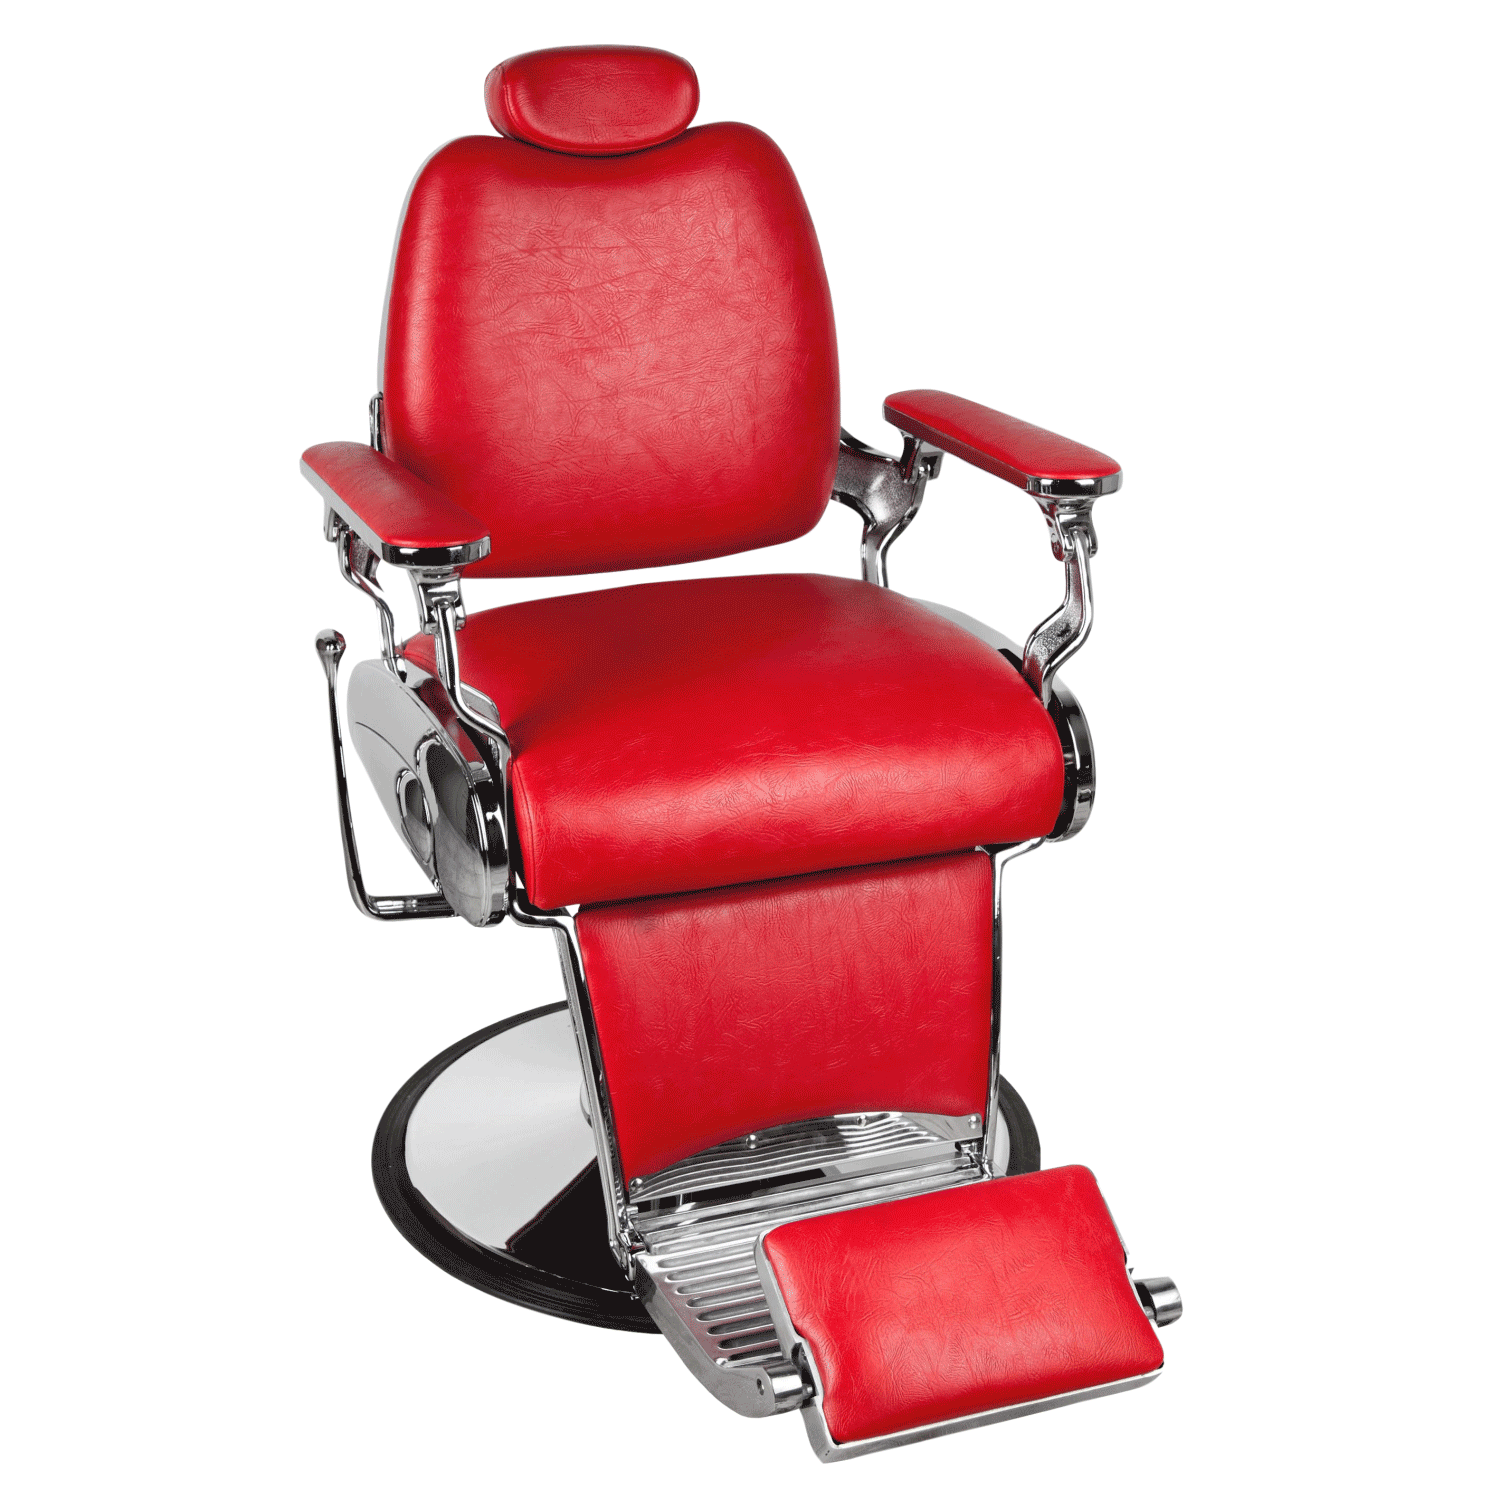 Red Barber Chair Jaguar Red Barber Chair